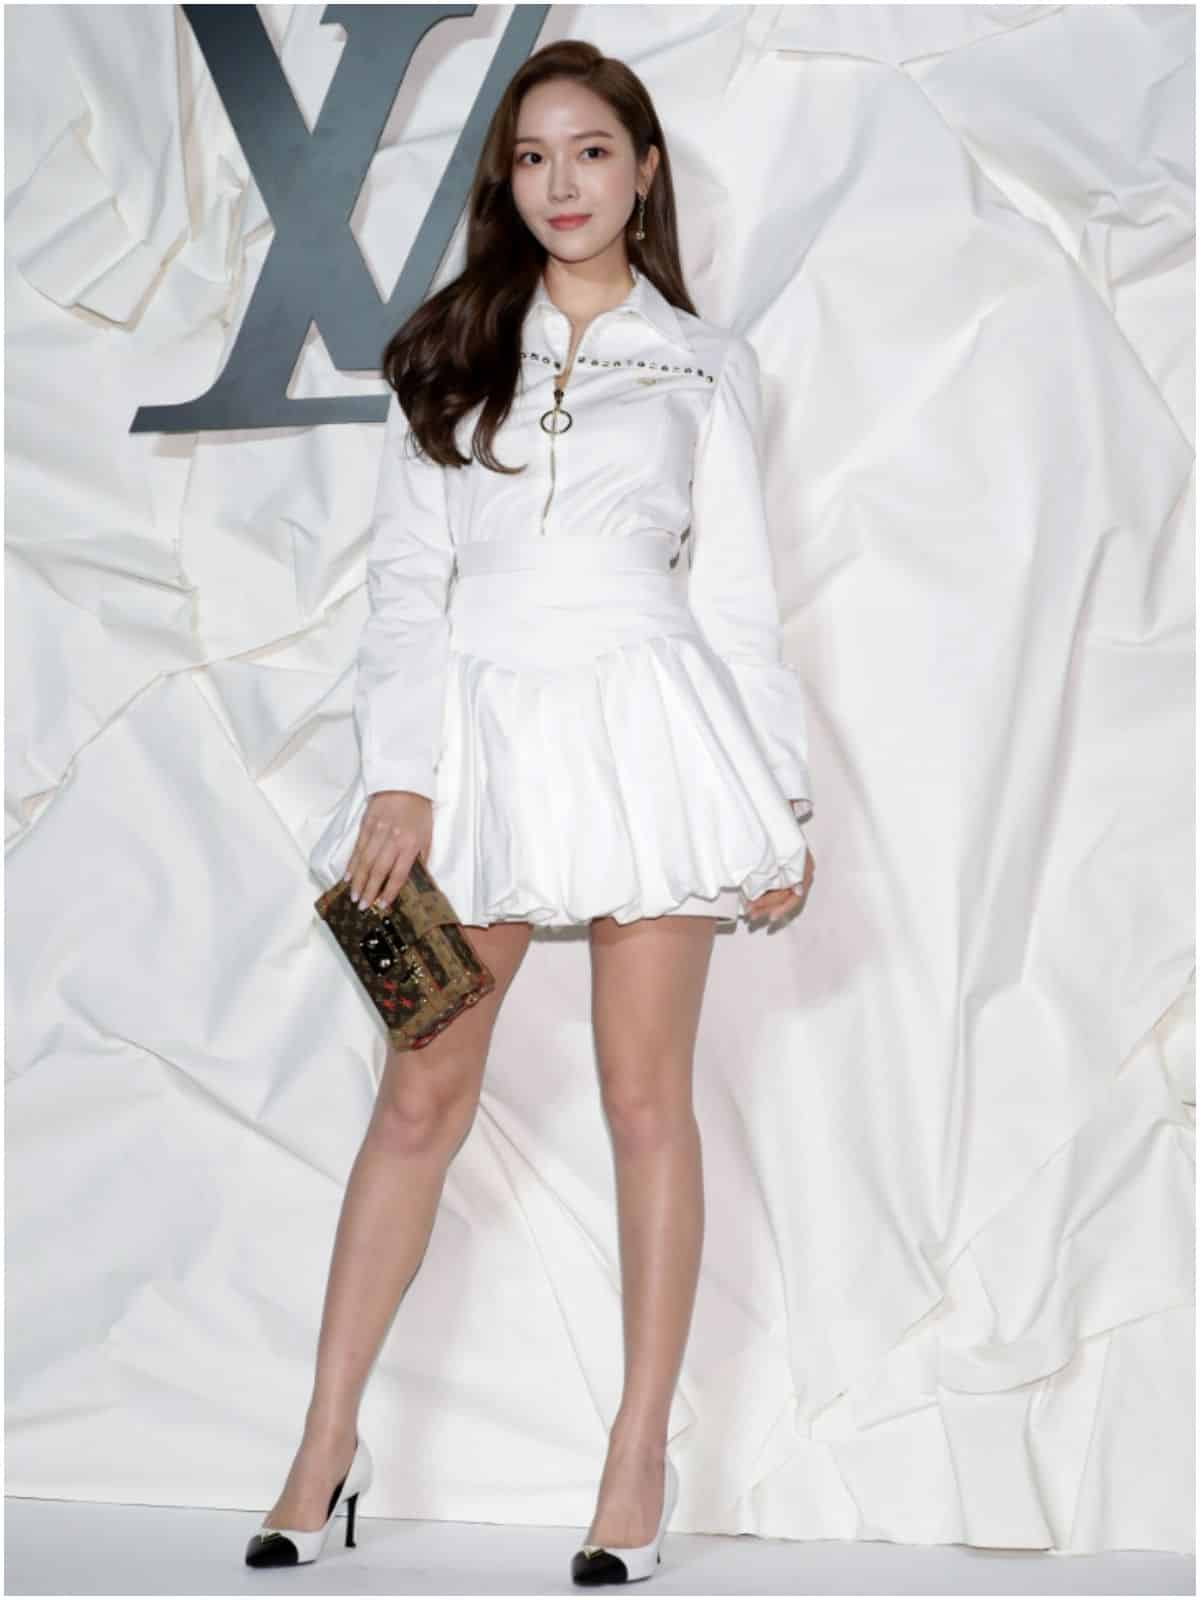 what is the net worth of Jessica Jung